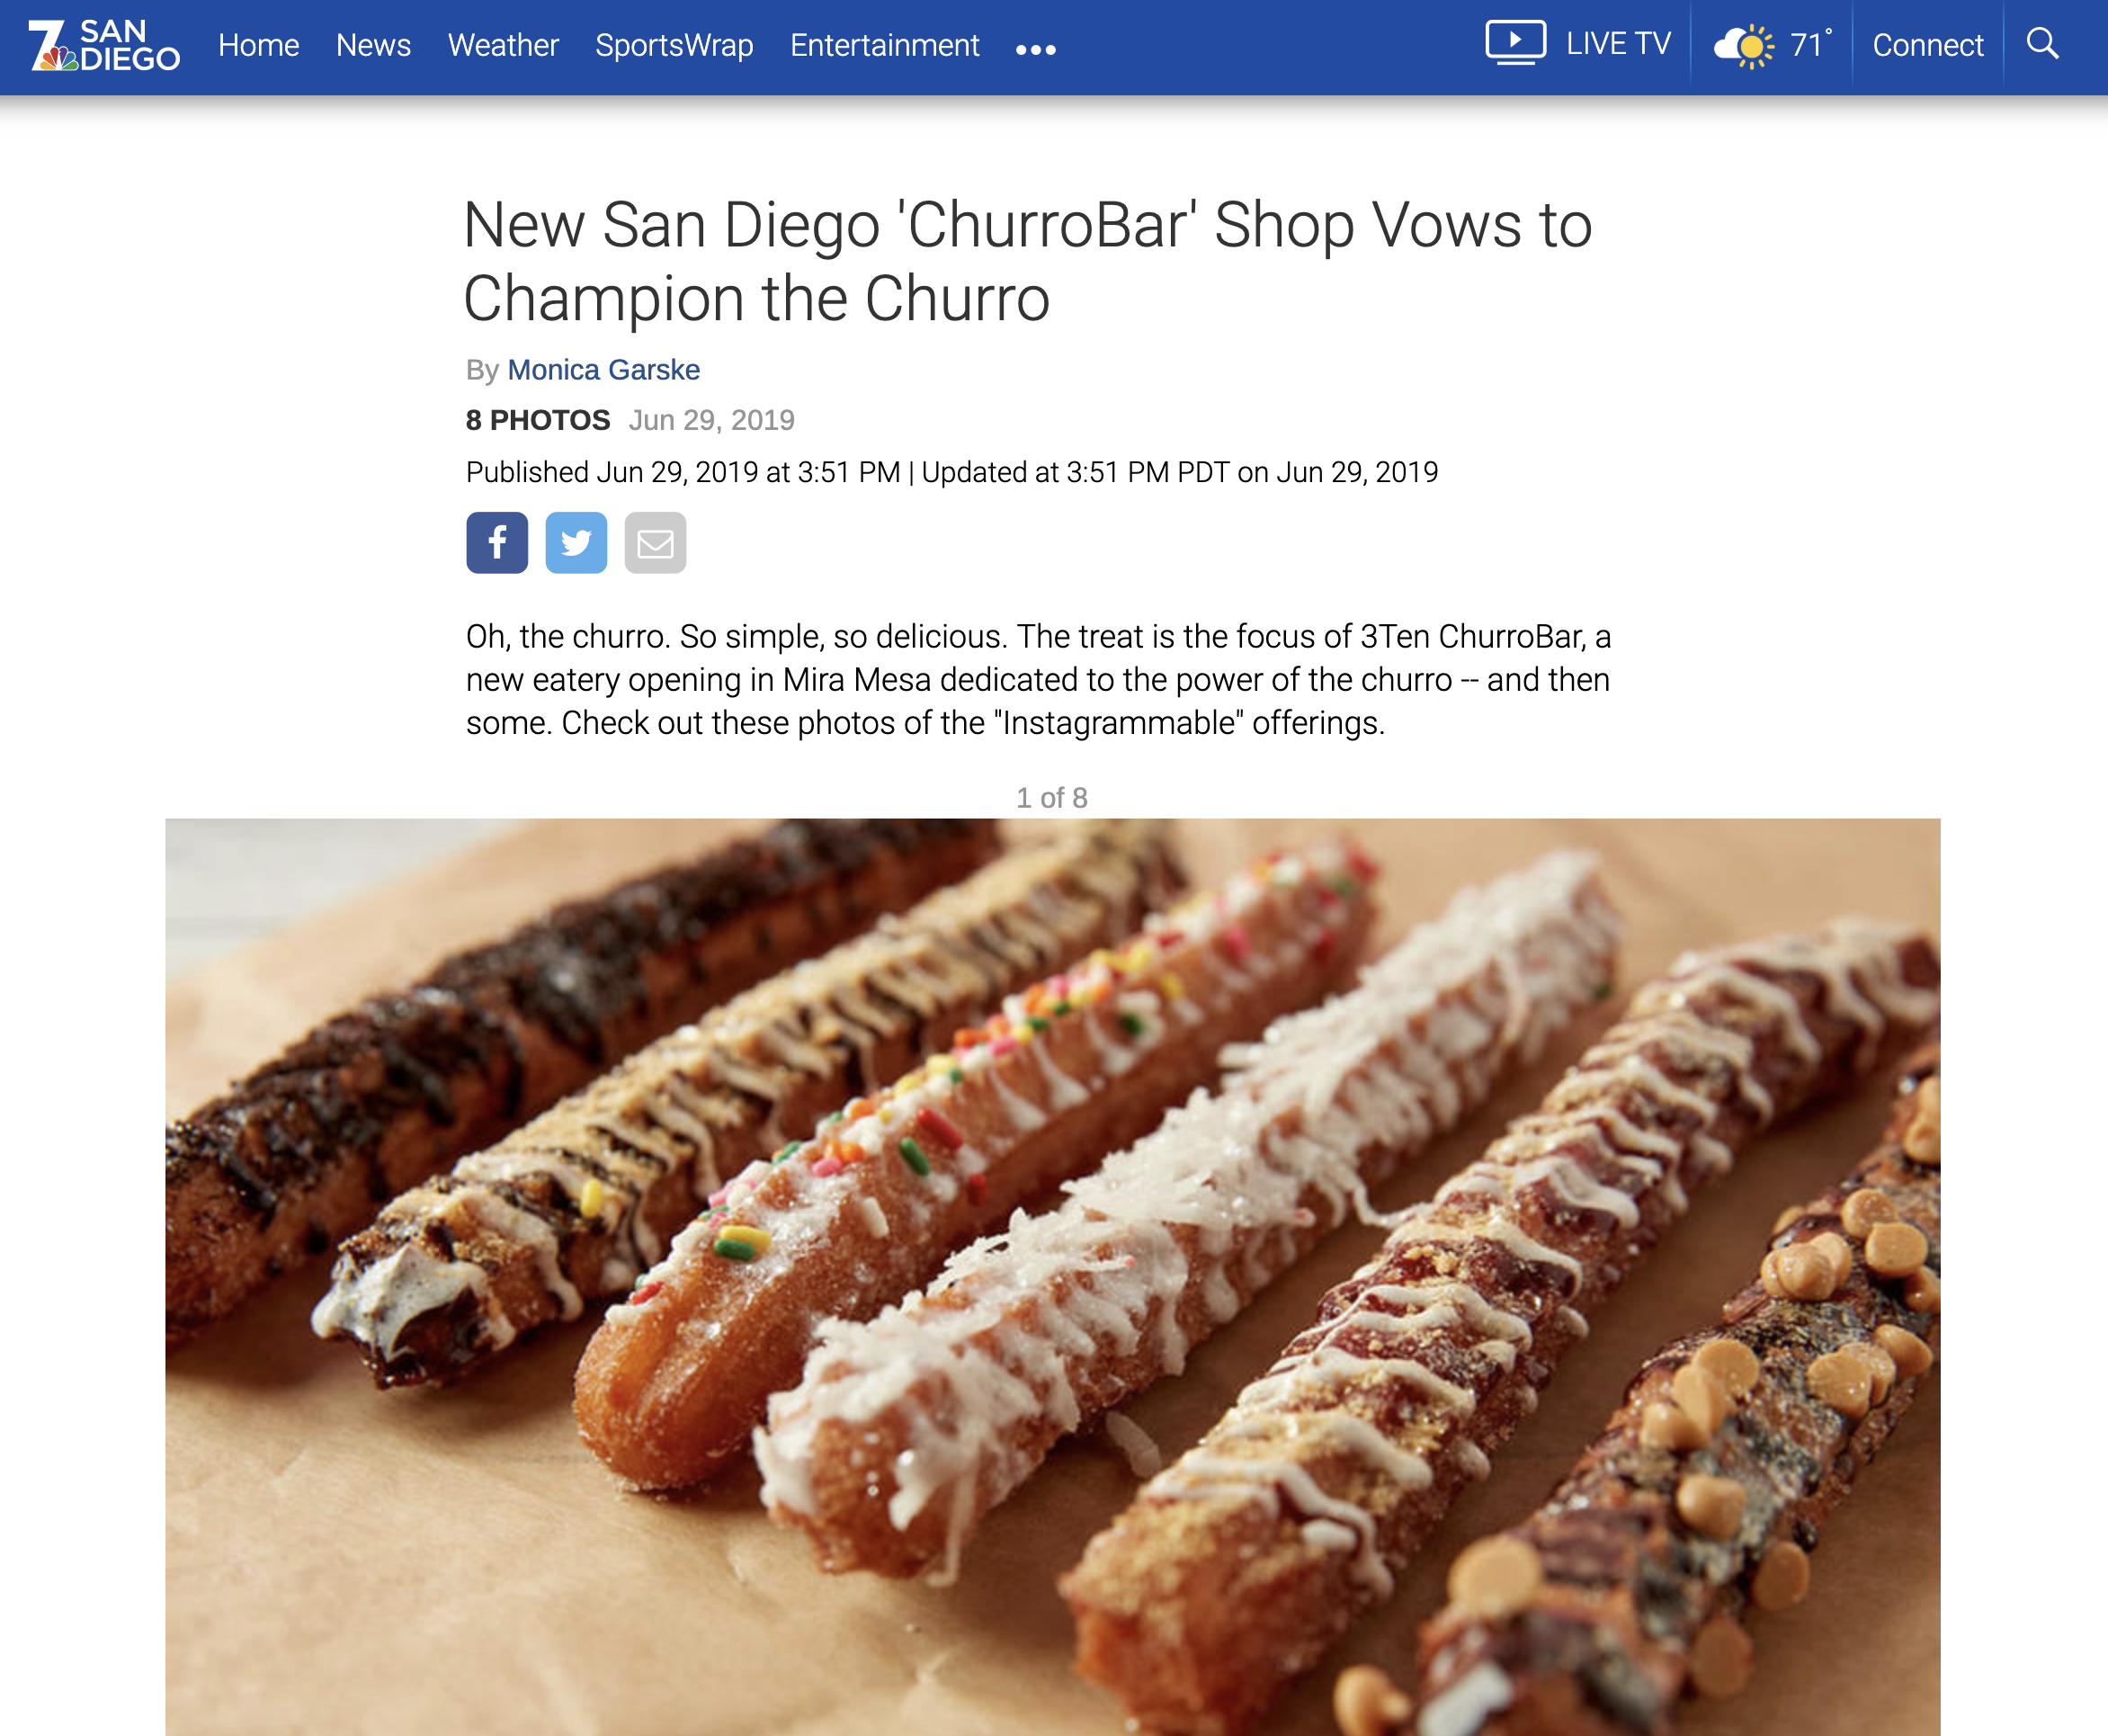 NBC SAN DIEGO - New San Diego 'ChurroBar' Shop Vows to Champion the Churro